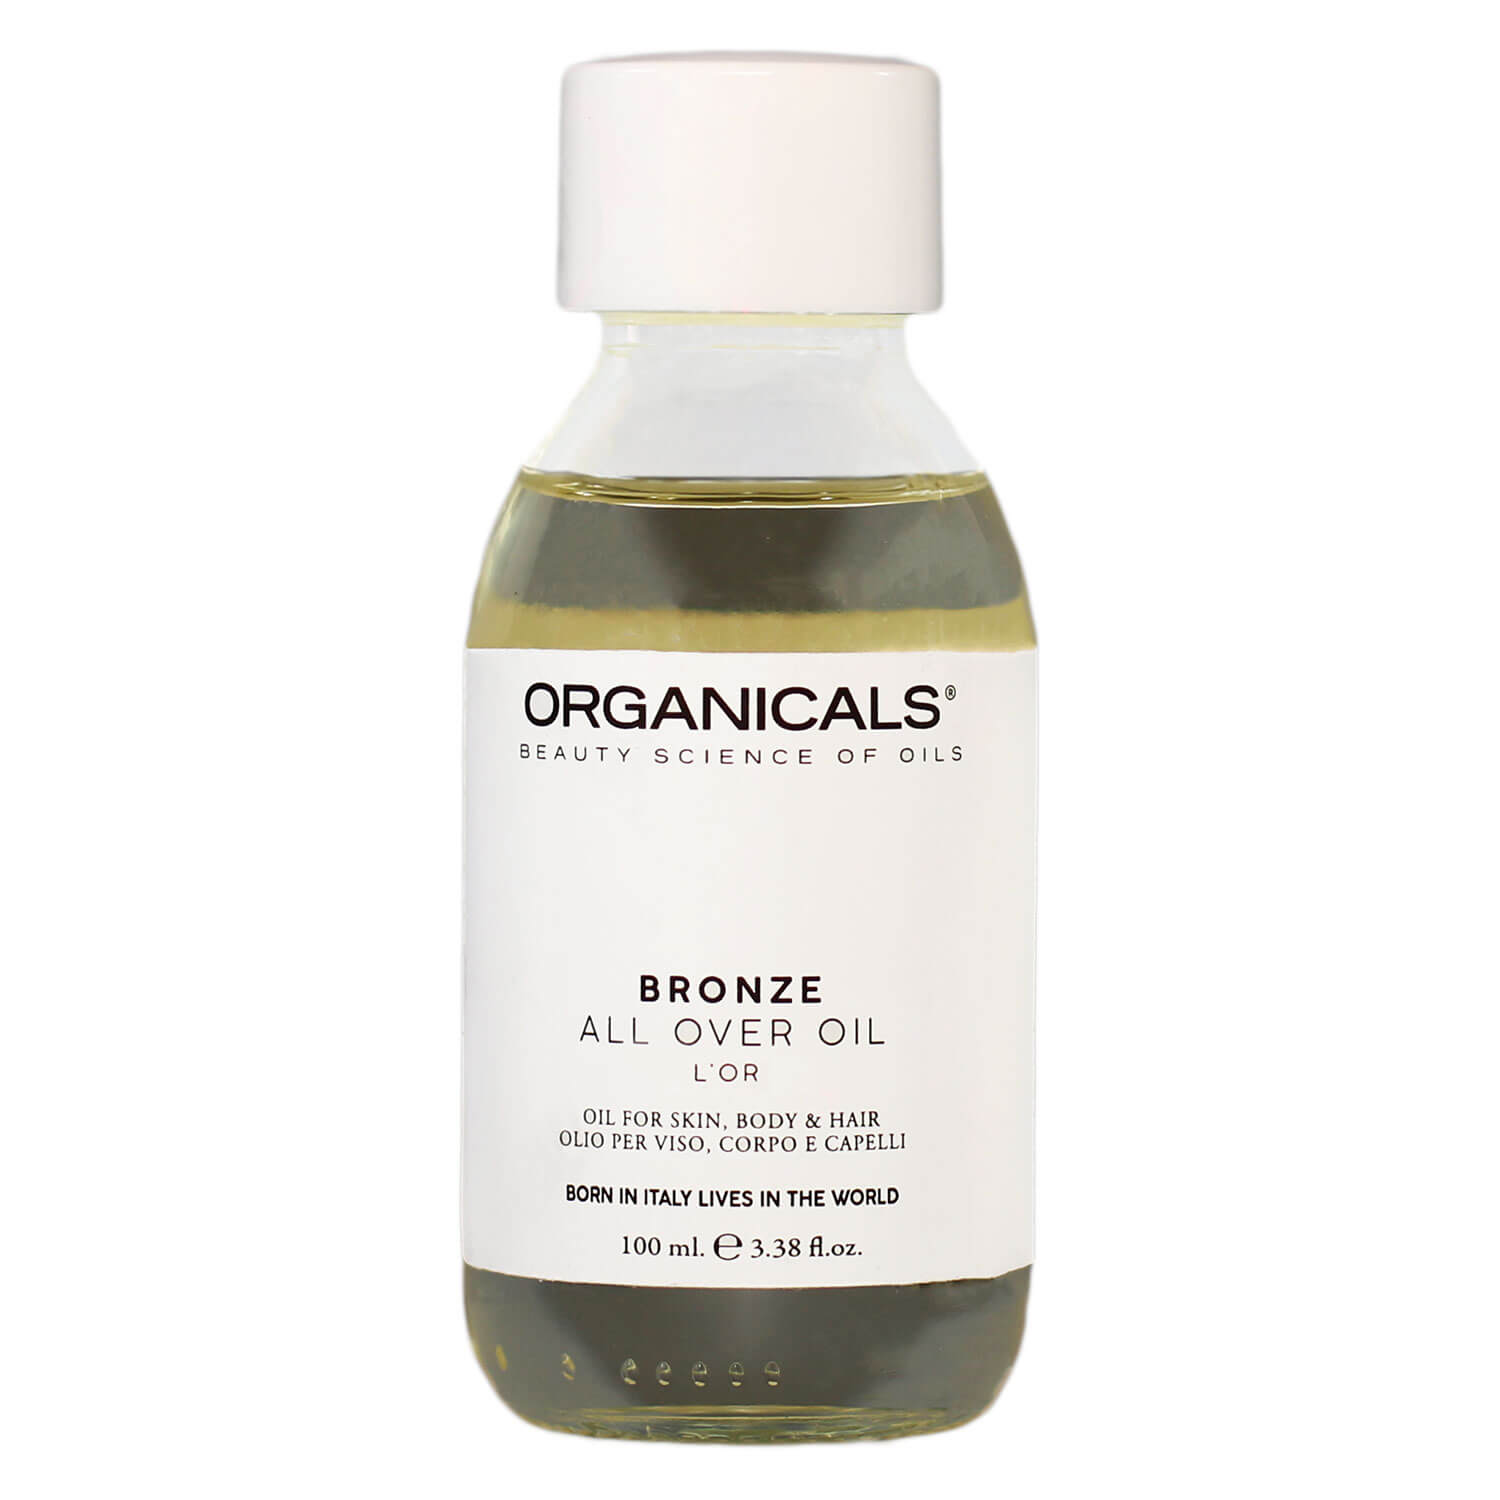 ORGANICALS - Bronze All Over Oil L'Or